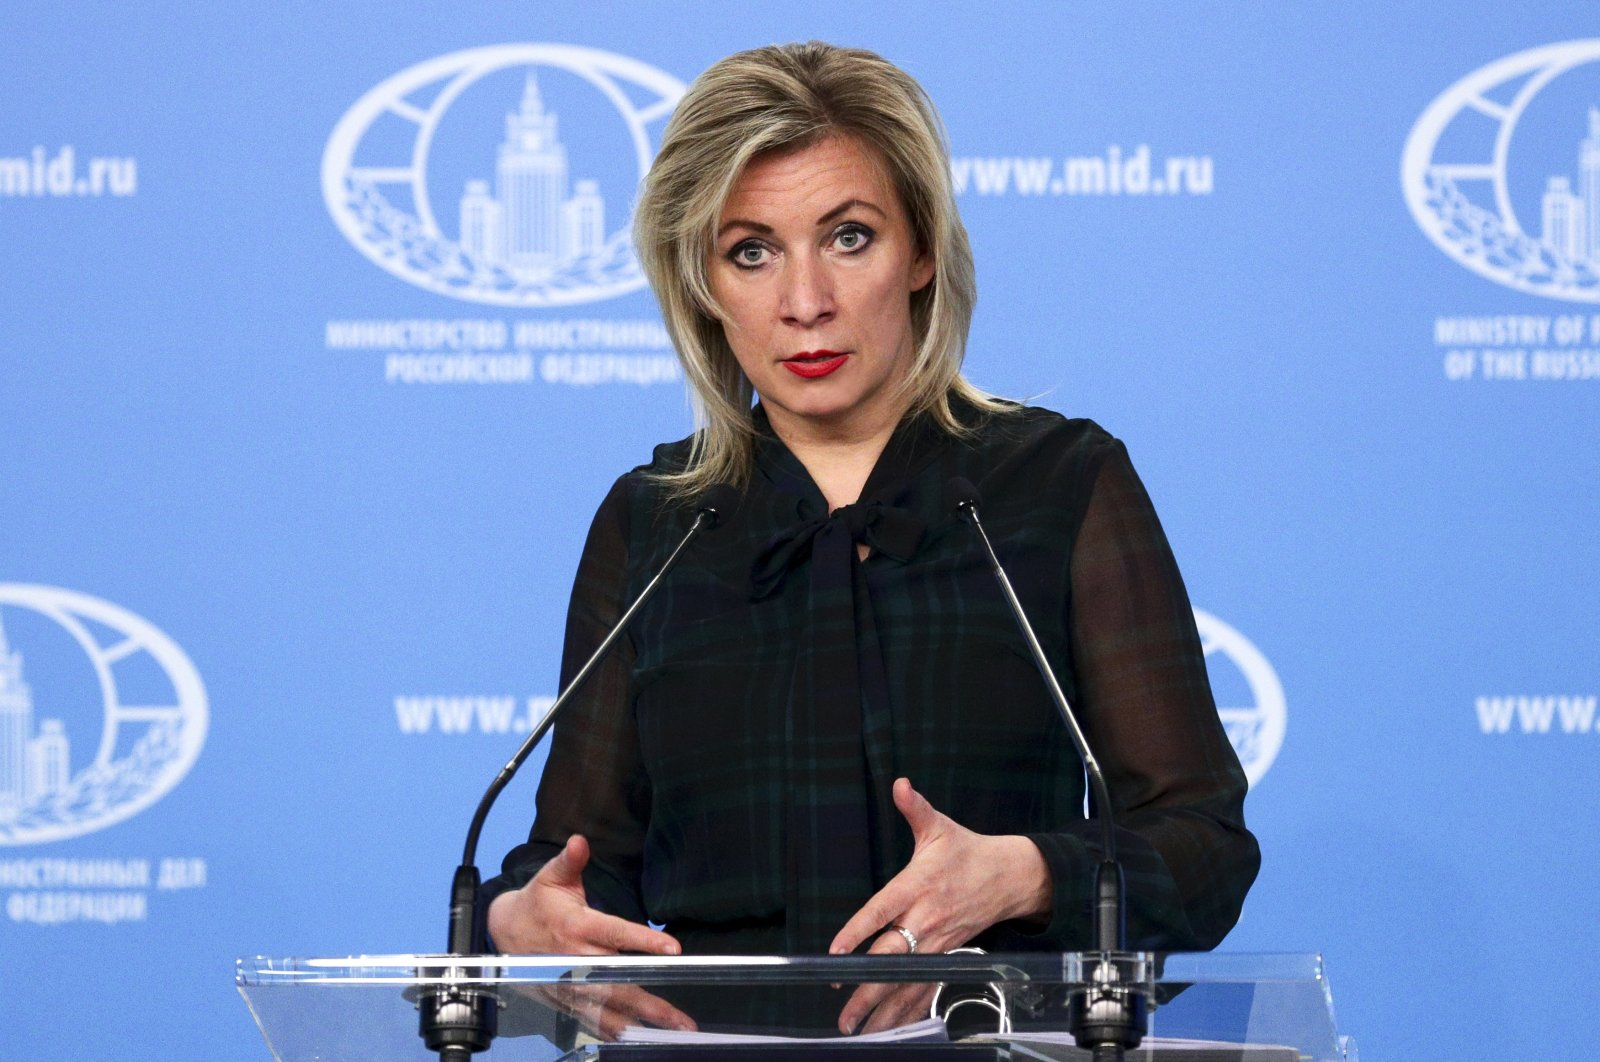 Russian Foreign Ministry spokesperson Maria Zakharova gestures while speaking during briefing about foreign policy in Moscow, Russia, March 12, 2021. (Russian Foreign Ministry Press Service via AP)